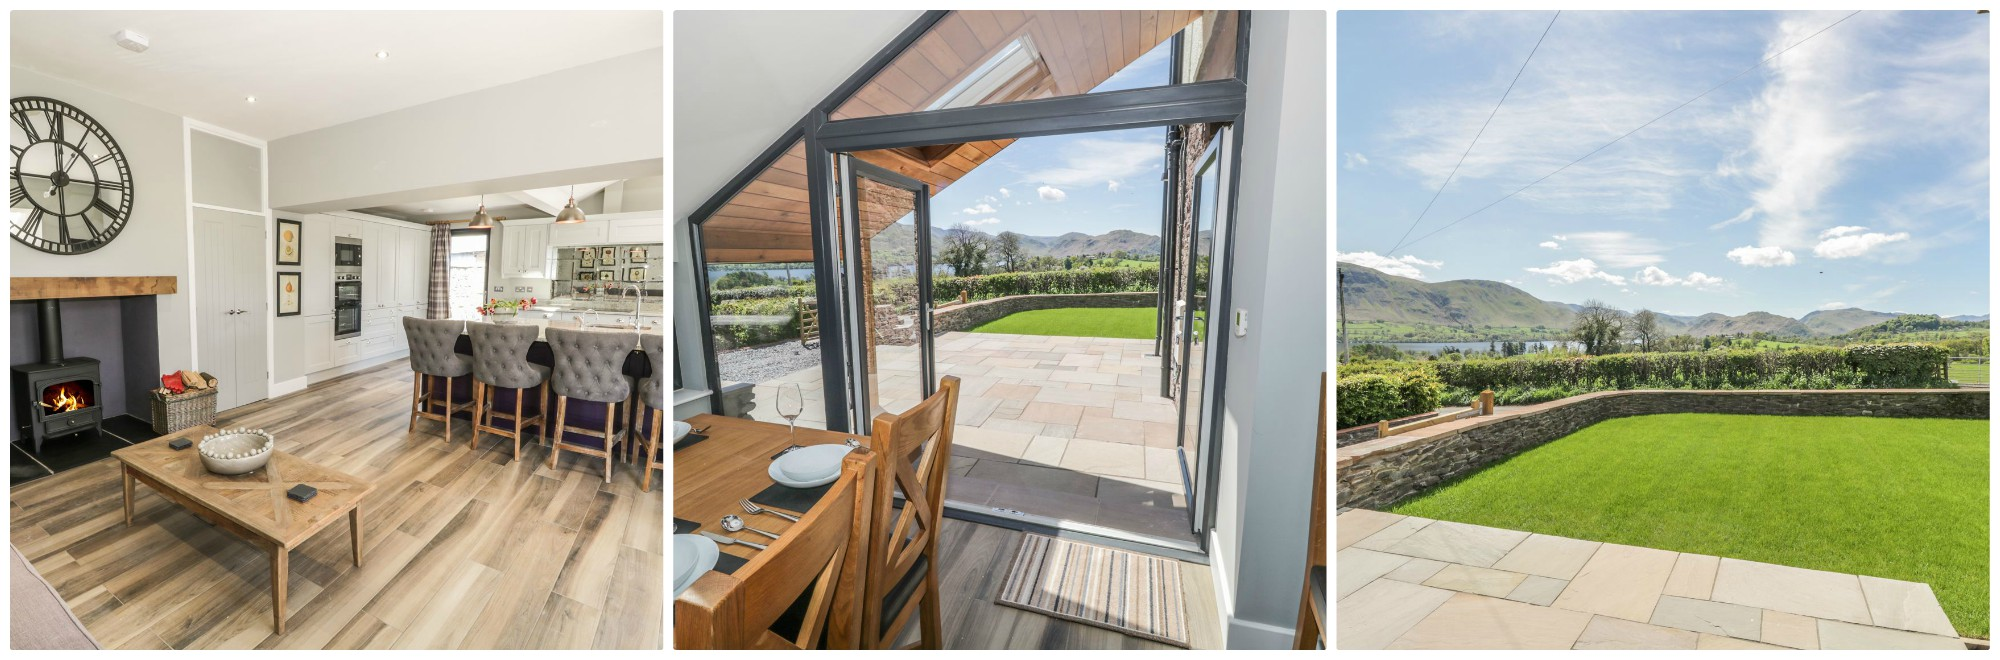 Stunning Lake Views from this fabulous modern Lake District holiday let near Ullswater